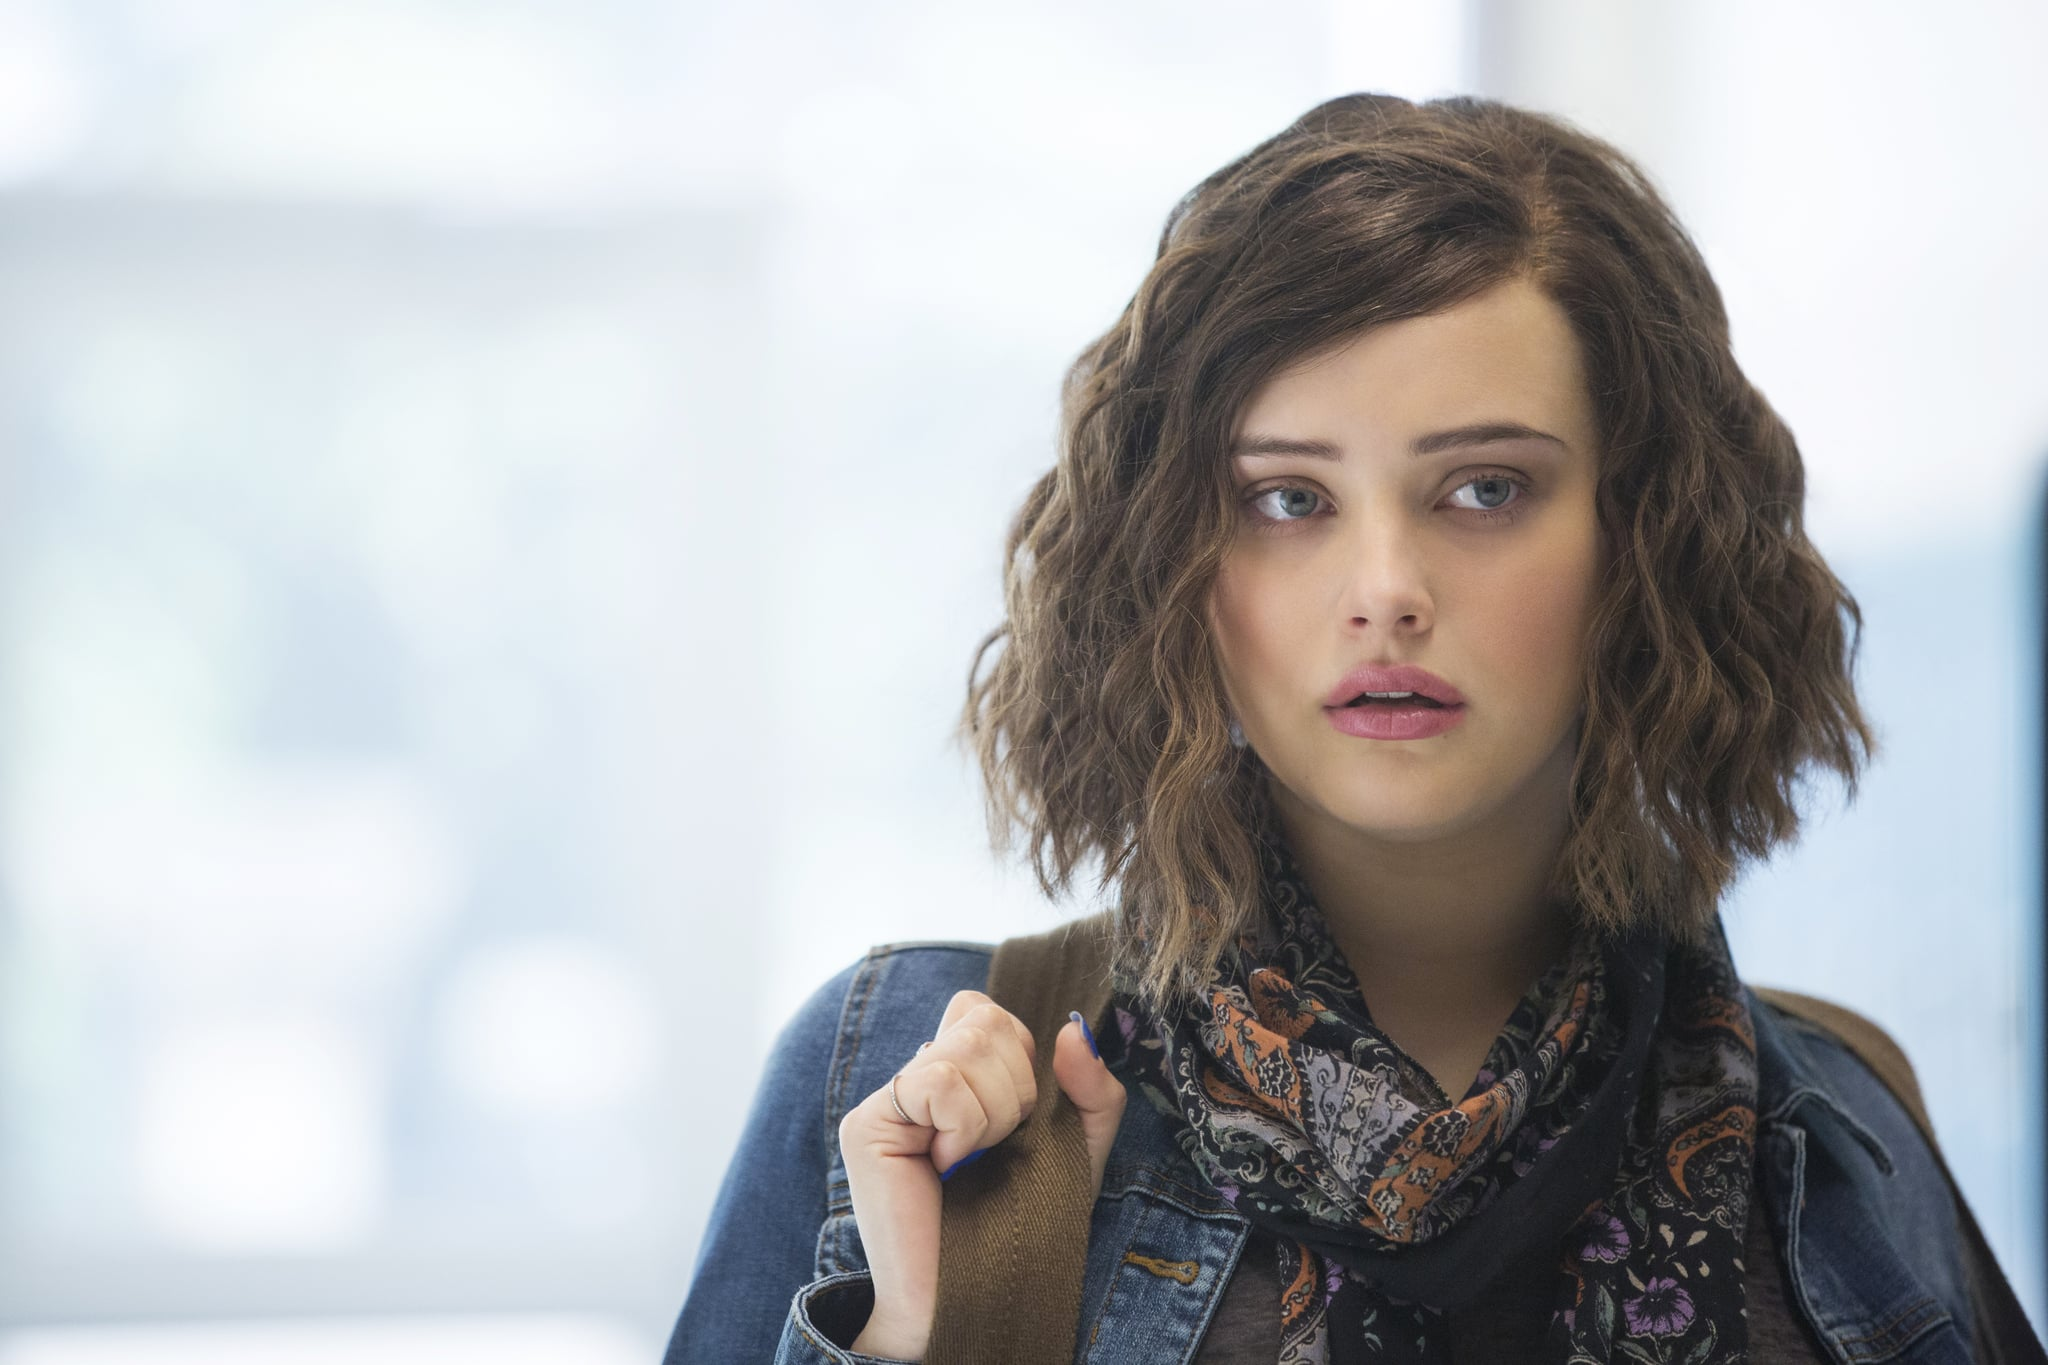 Quotes From Thirteen Reasons Why Magnificent Katherine Langford's Quotes About 13 Reasons Why Season 2